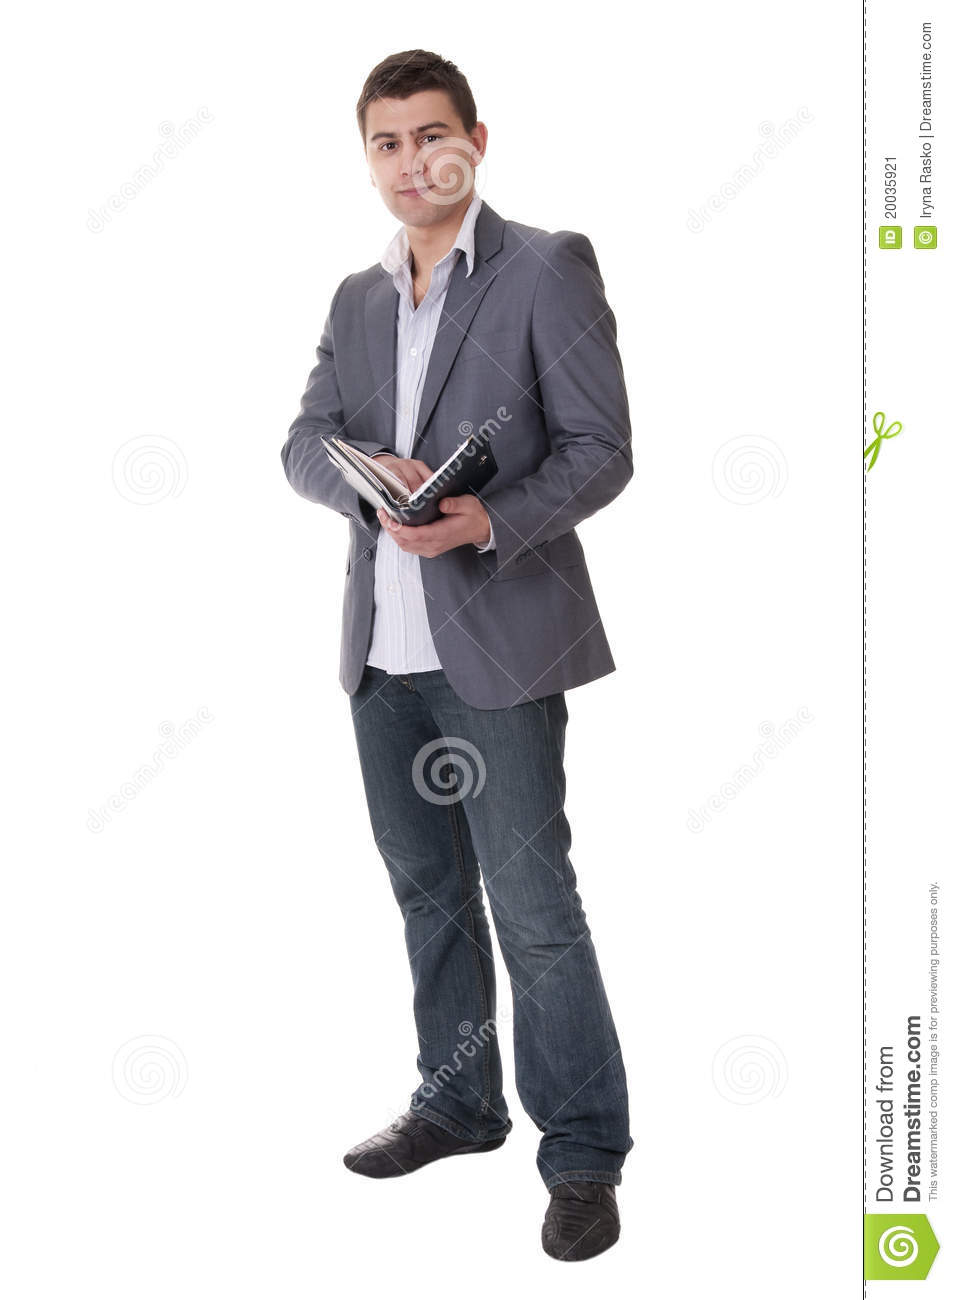 Man makes a note in notebook.